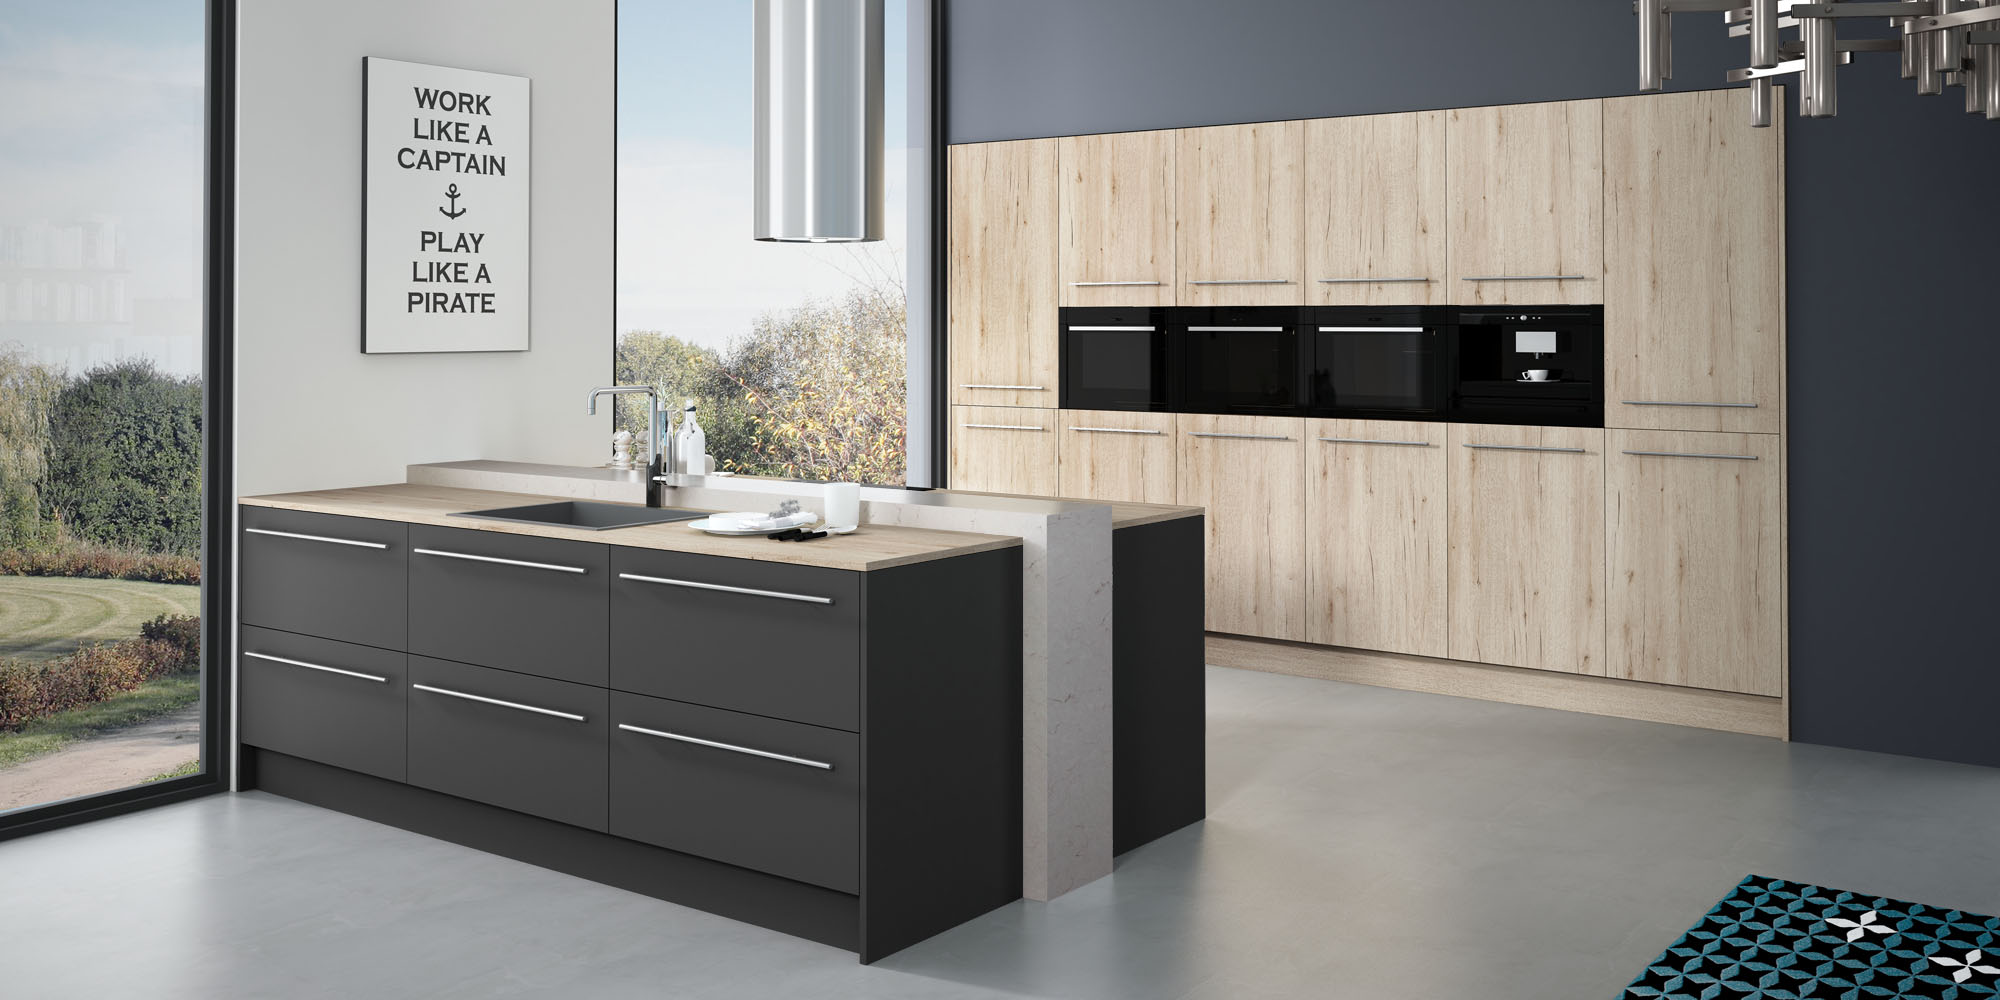 un nuevo concepto de cocinas modernas the new social kitchen faro by alvic